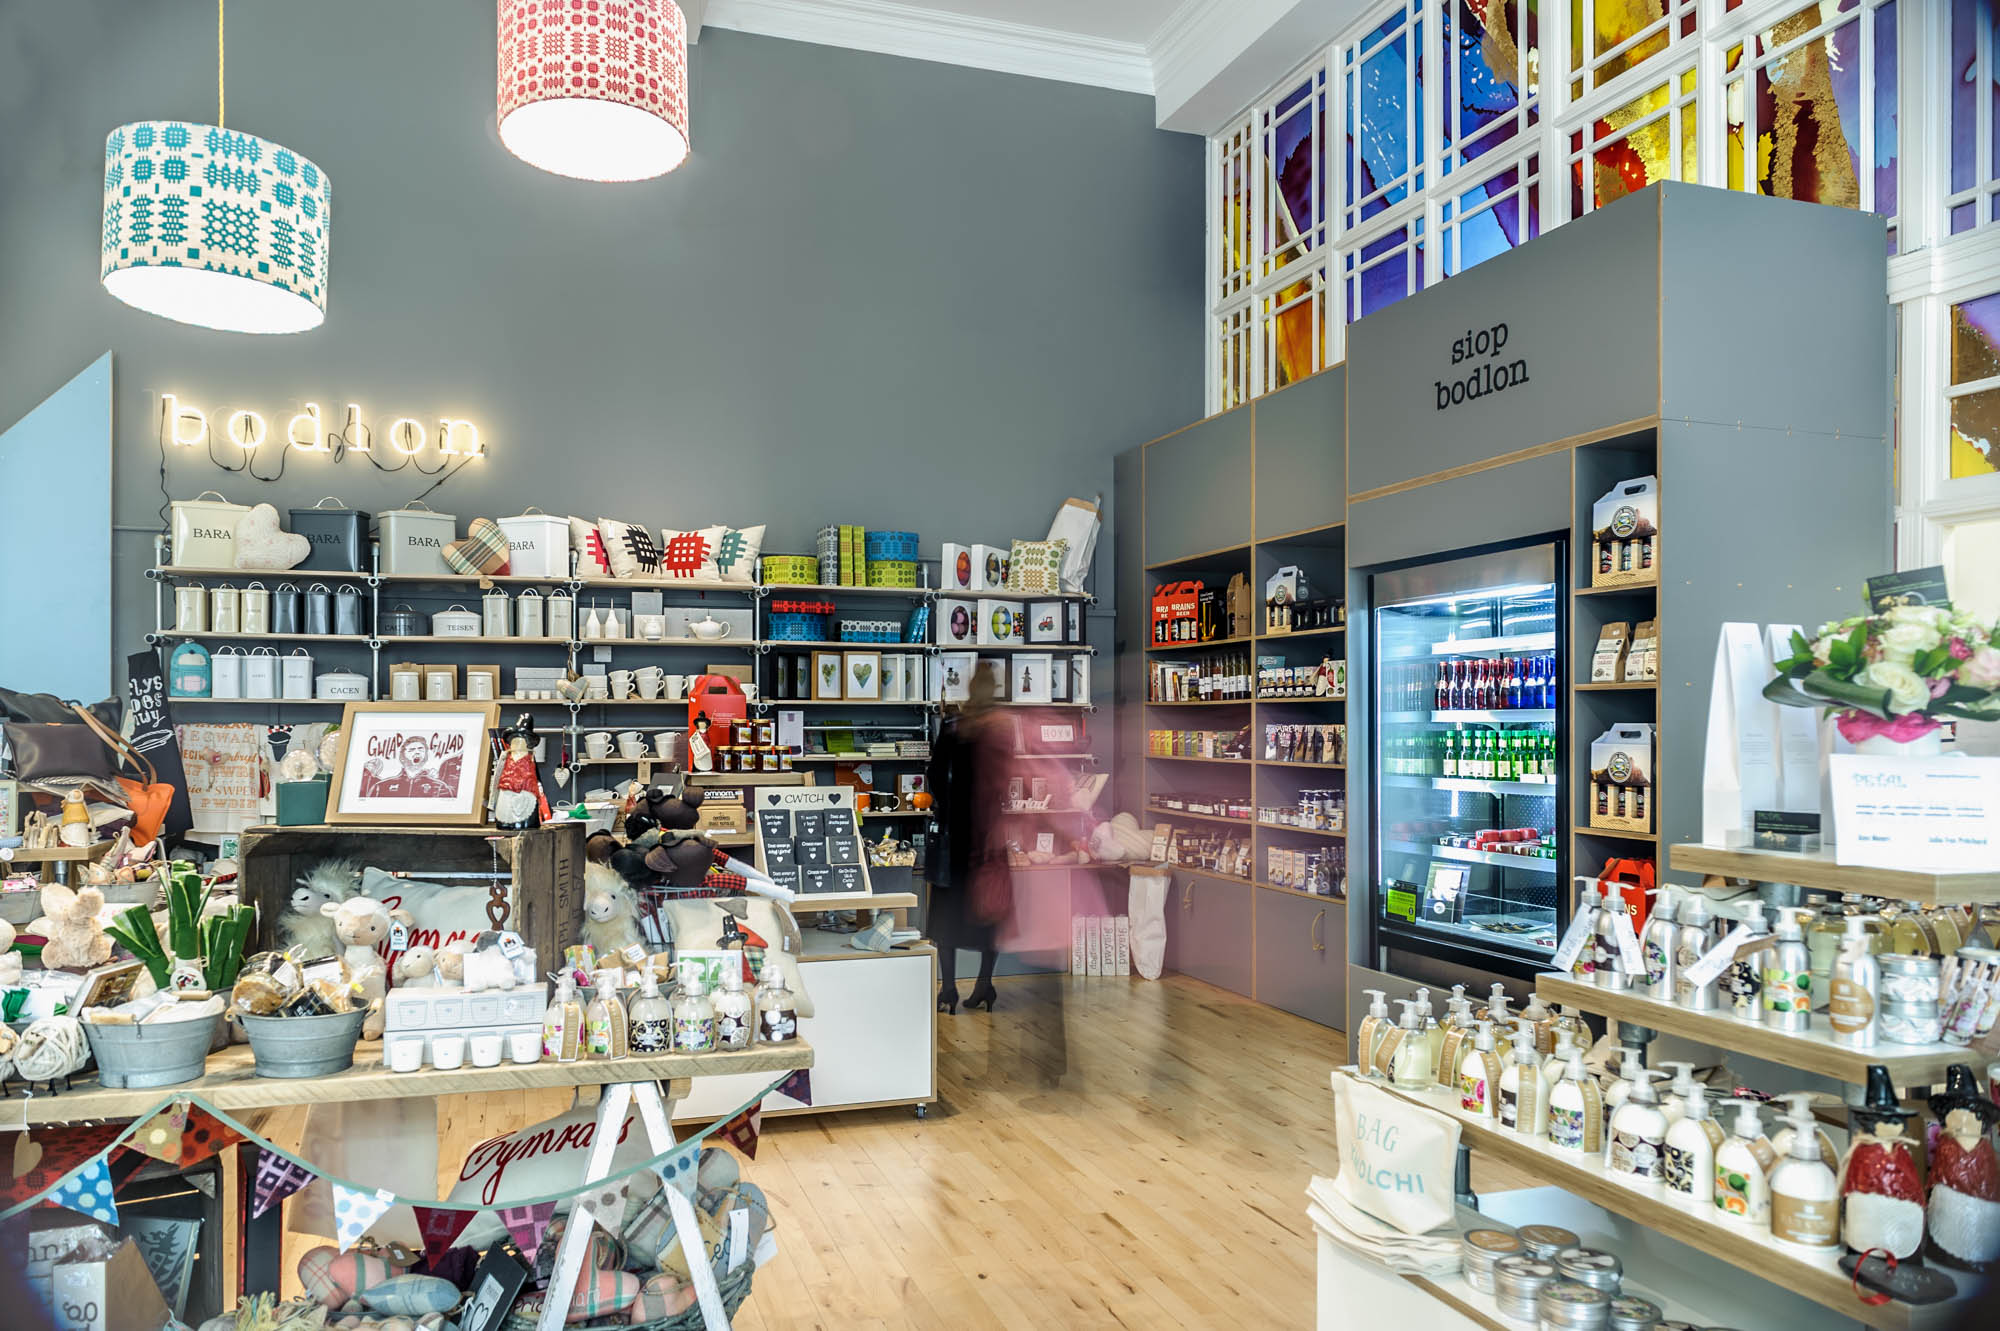 A photo of the gift shop within a high ceiling room in cardiff